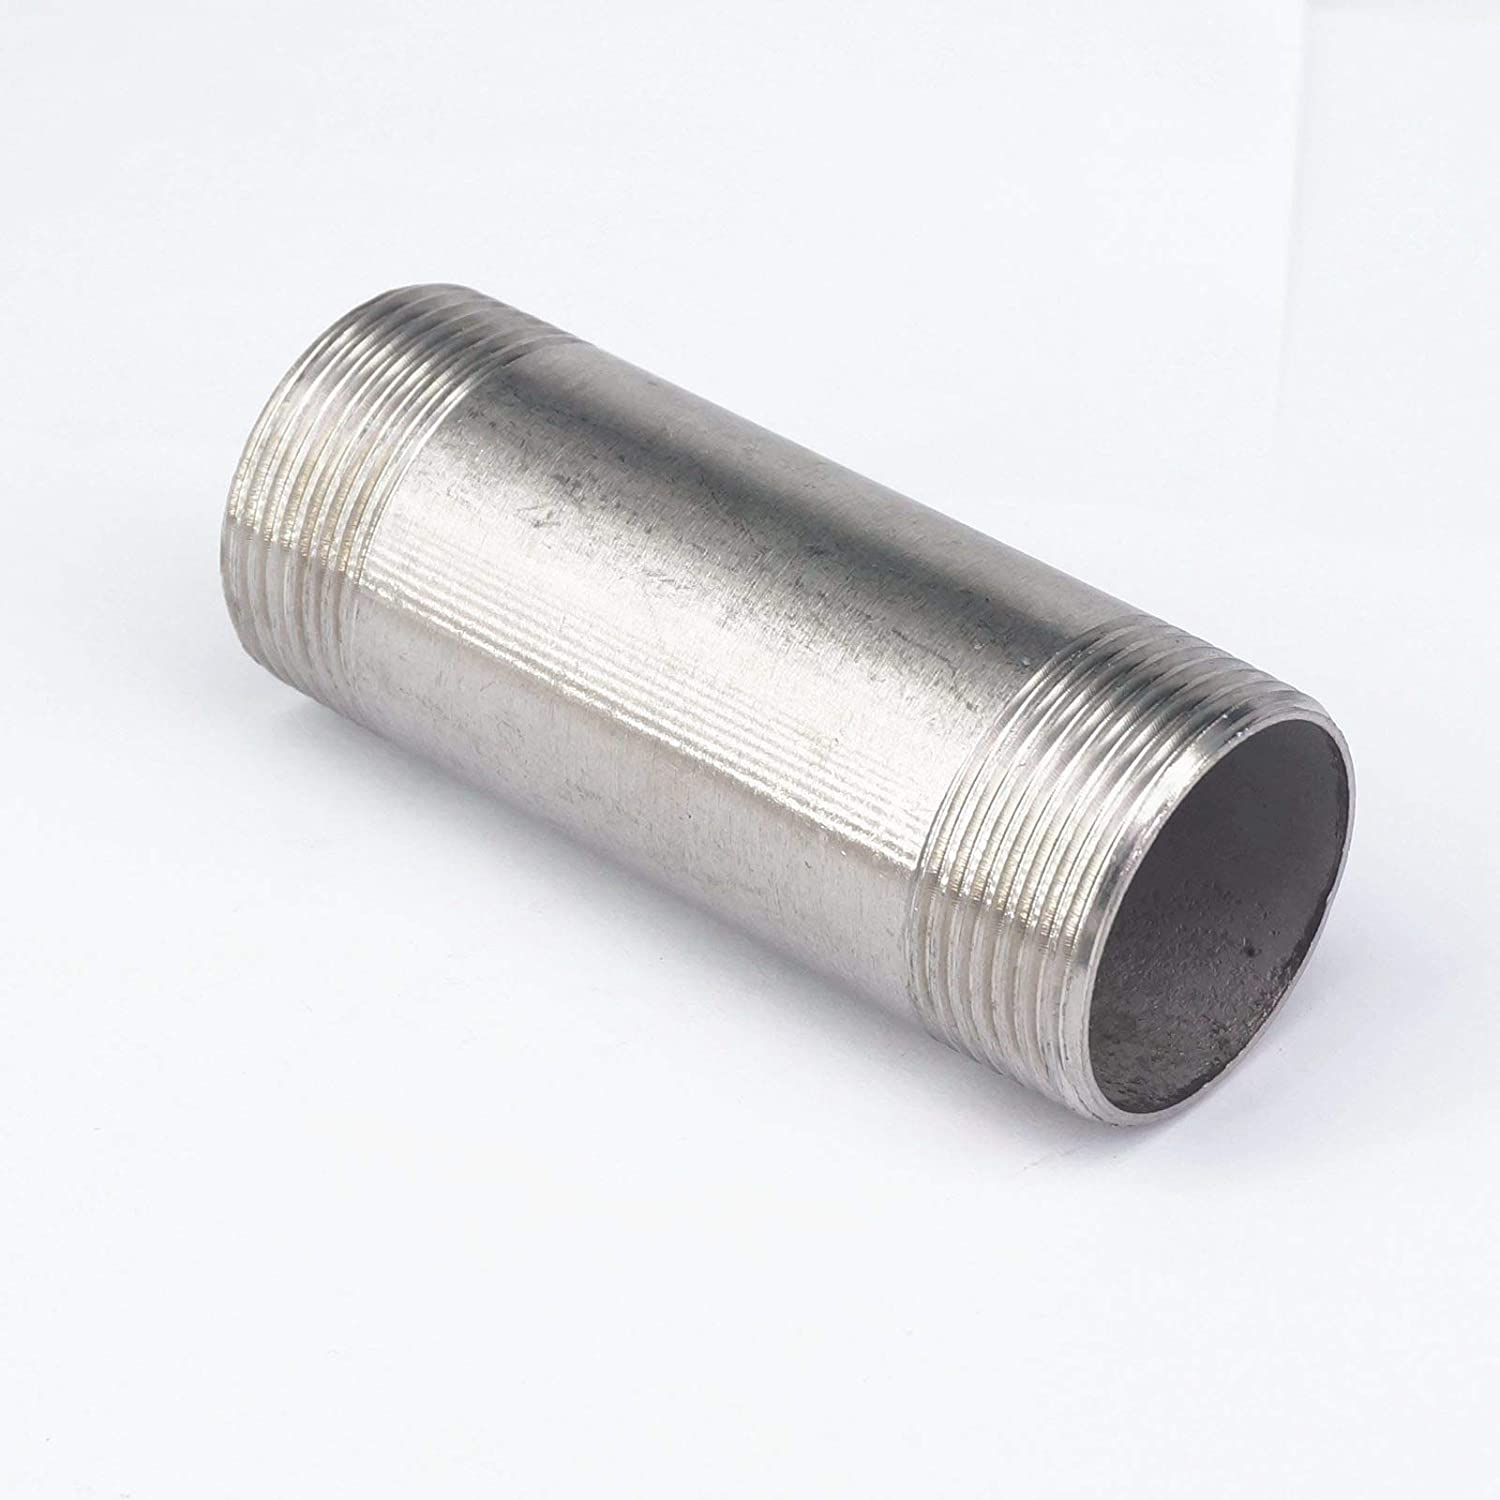 Sorekarain 2 BSPT Male Thread Length 100mm Barrel Nipple 304 Stainless Pipe Fitting Connector Coupler Water Oil air